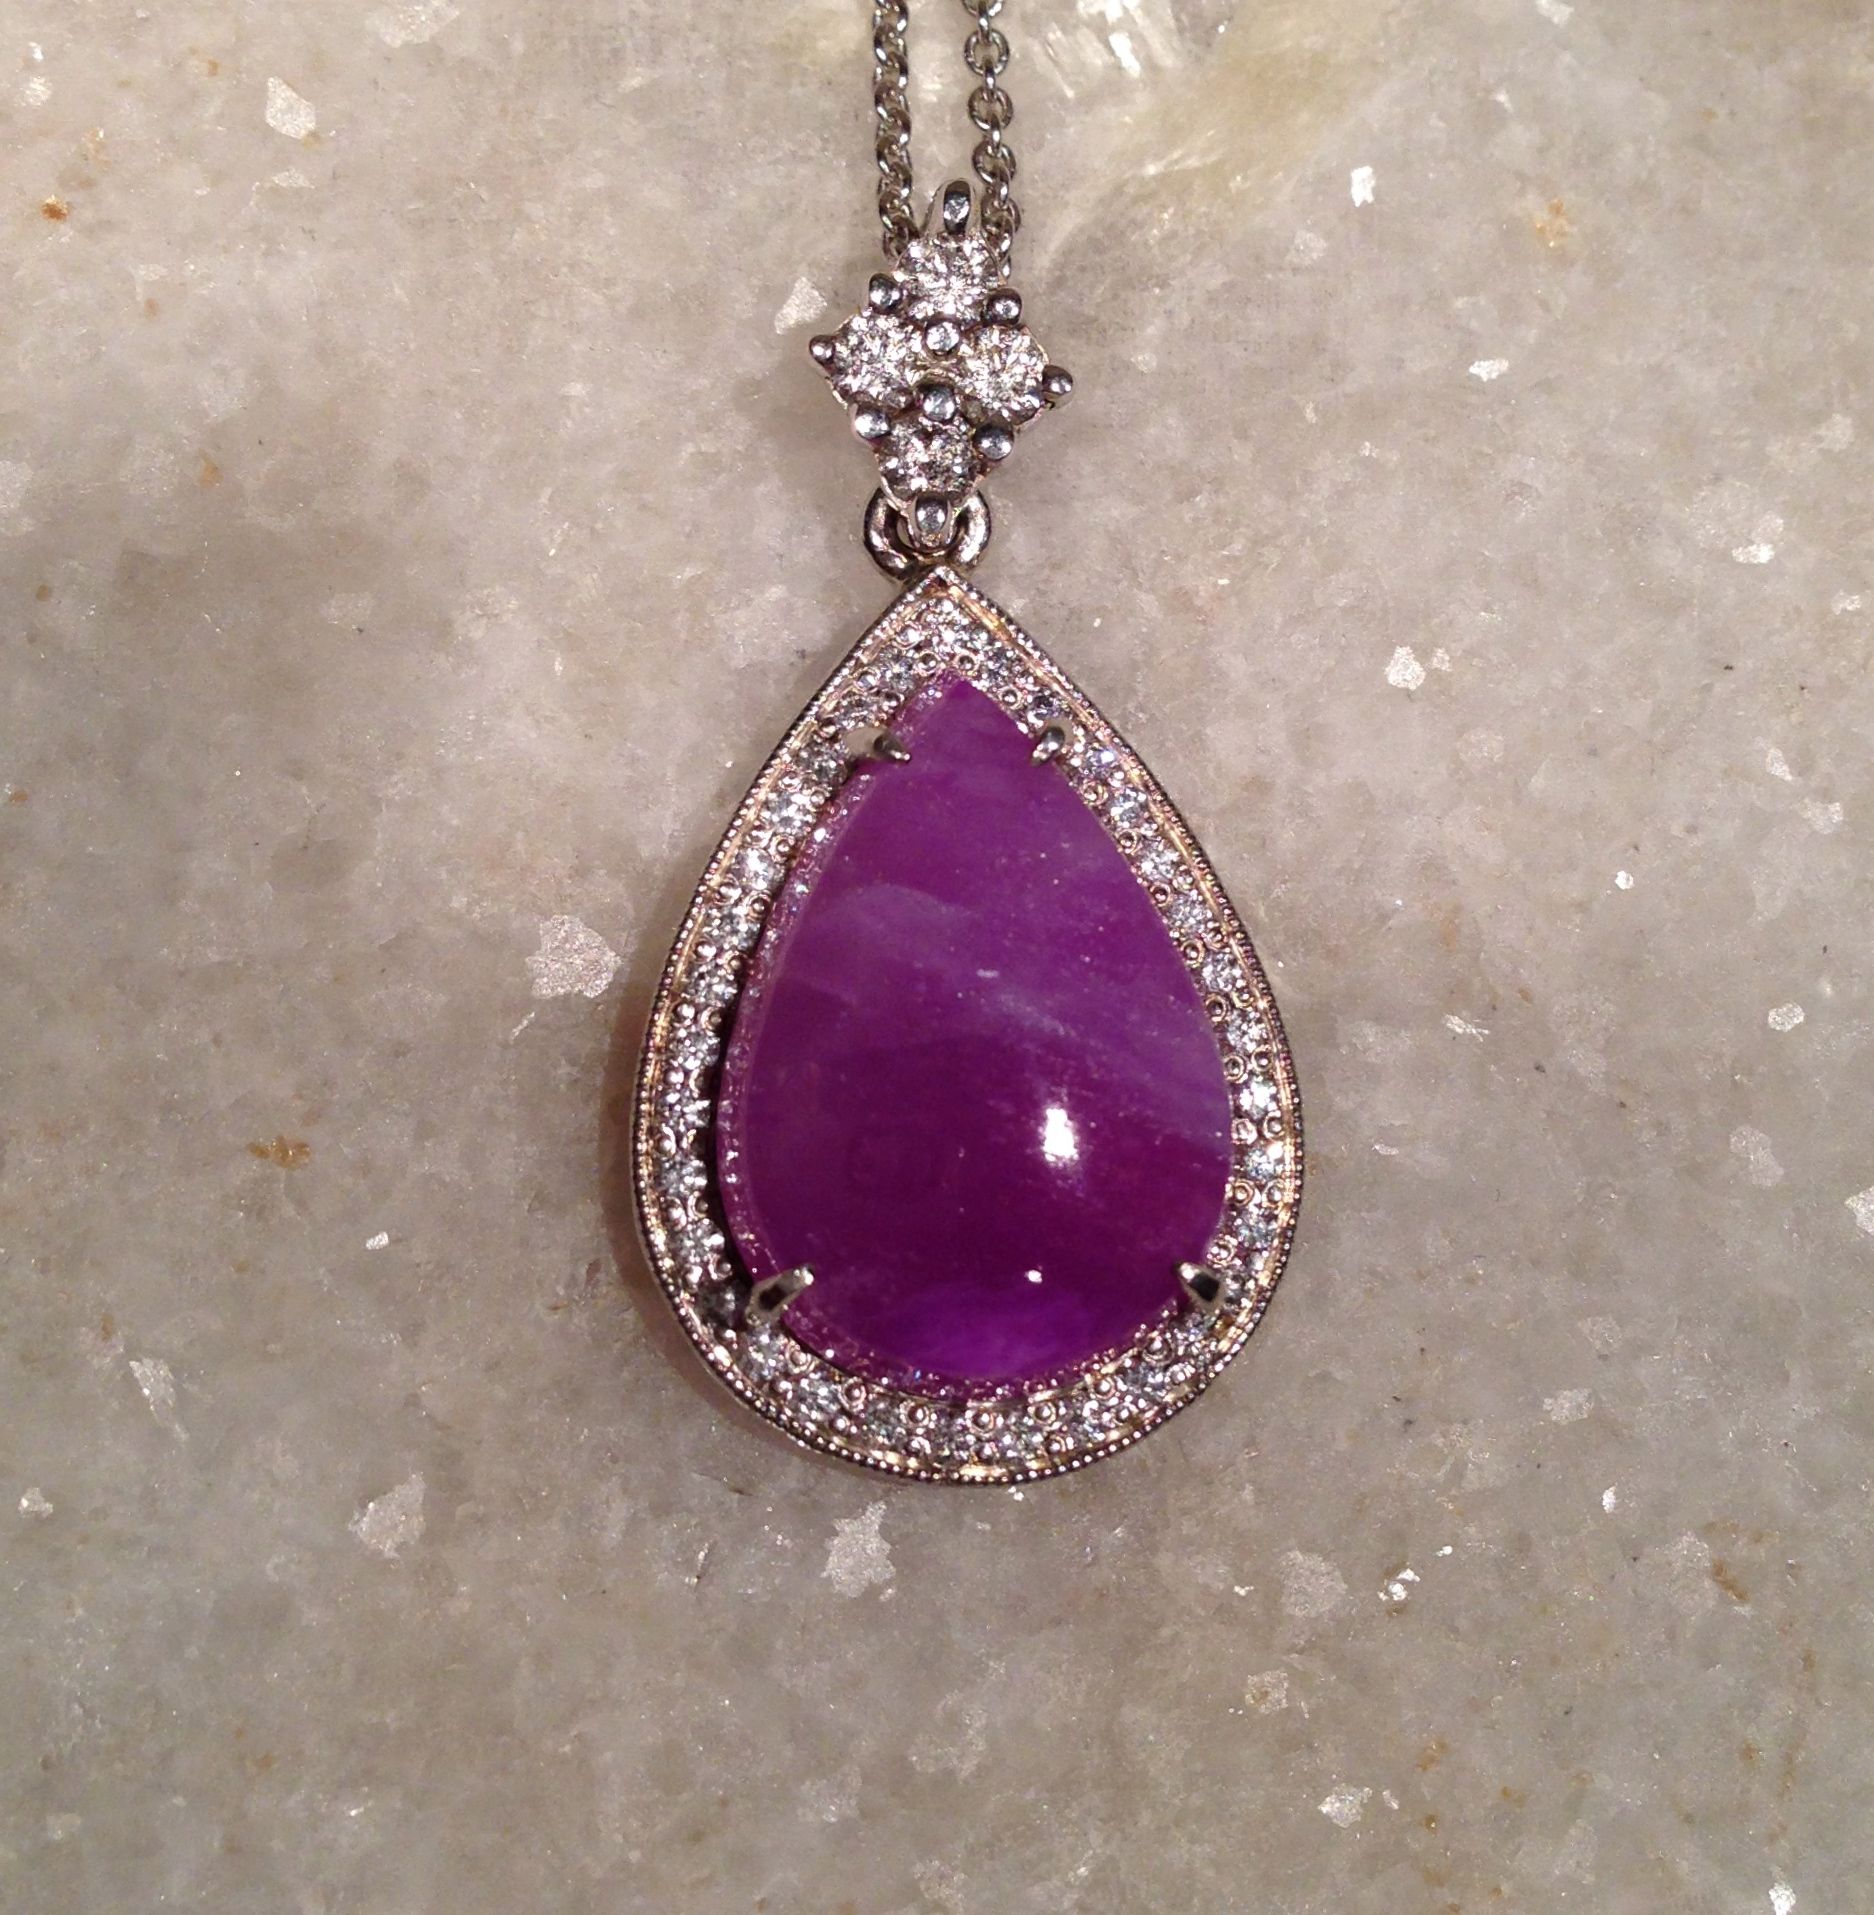 crystals a jewelry sugilite meenerals pendant w ruby s shop com cab gemstone in